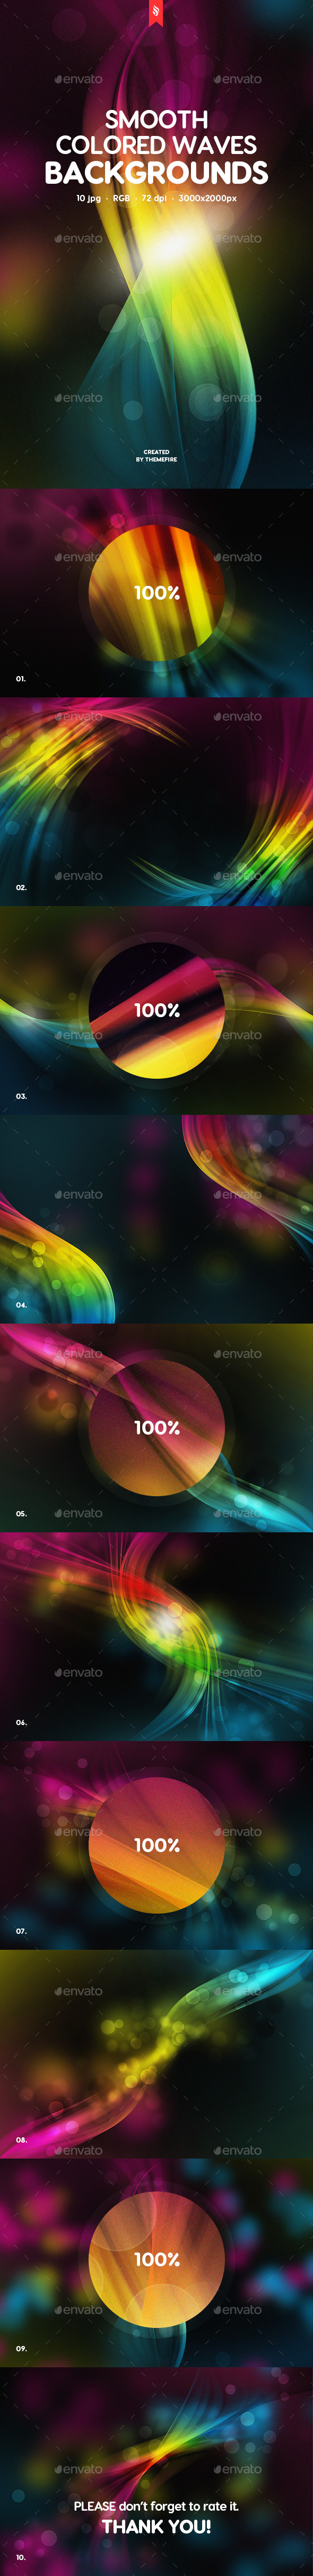 Smooth Colored Waves Backgrounds